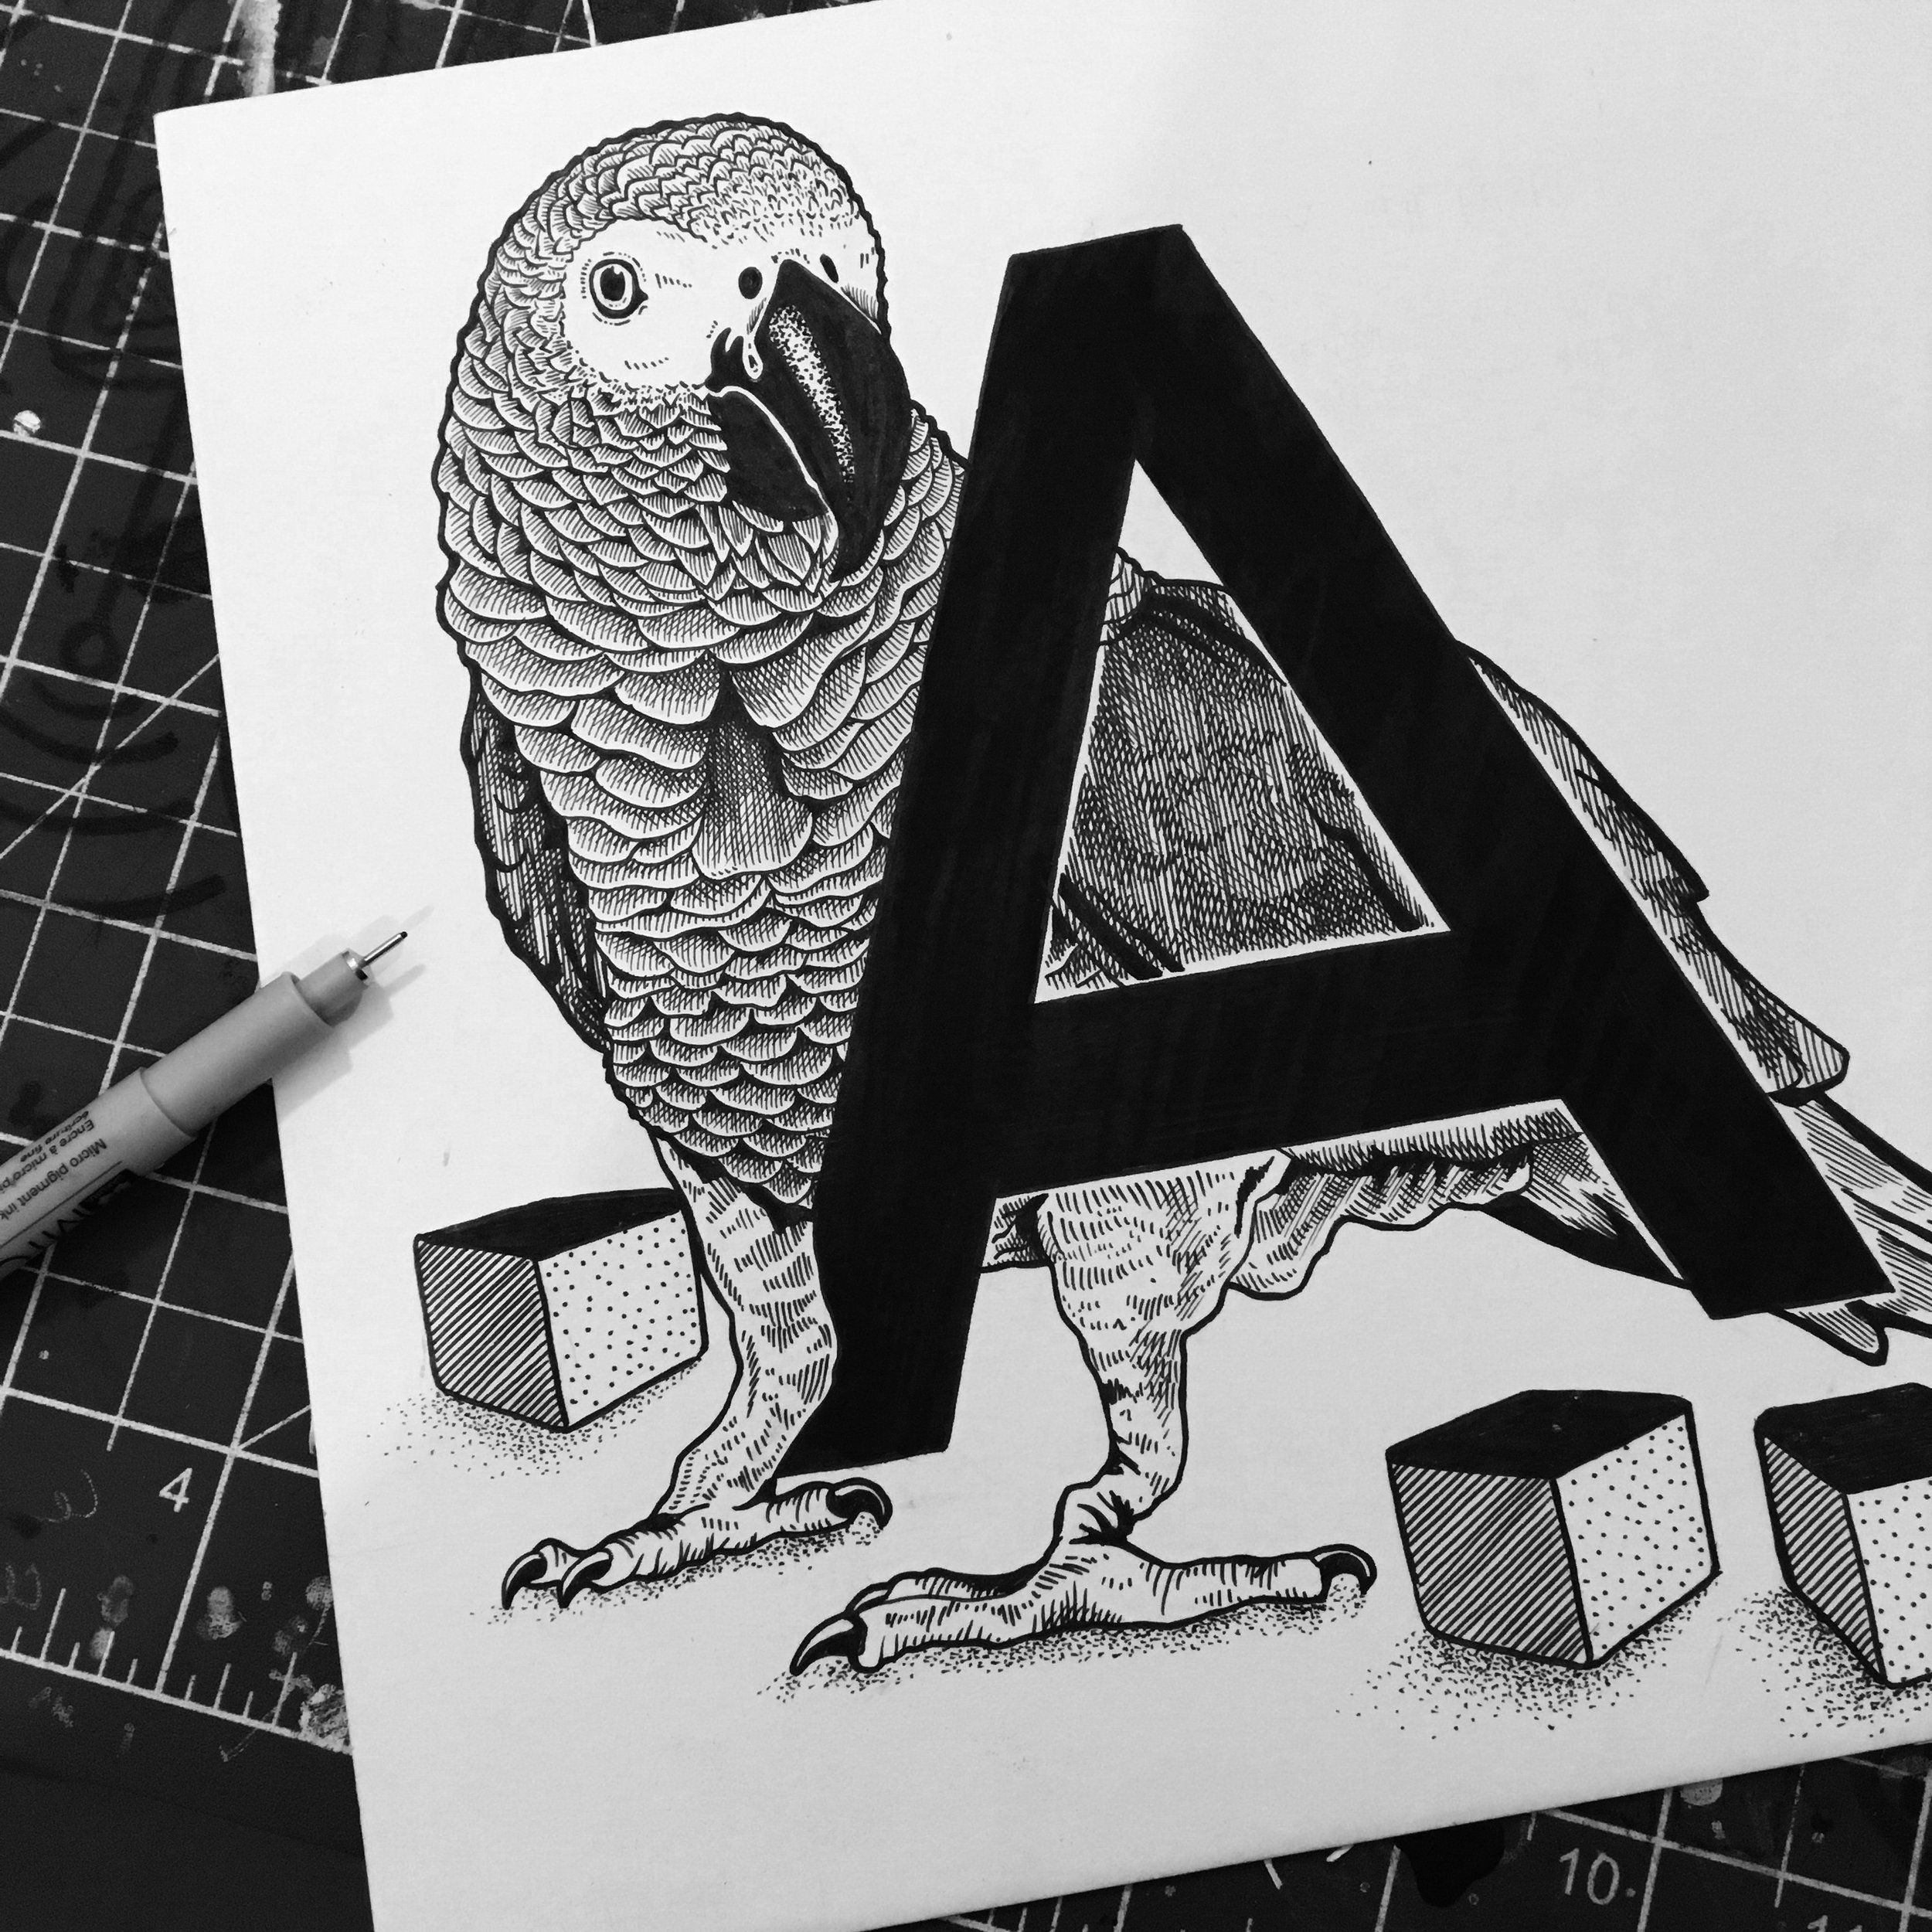 Alex the Parrot - The first animal to ask an existential question